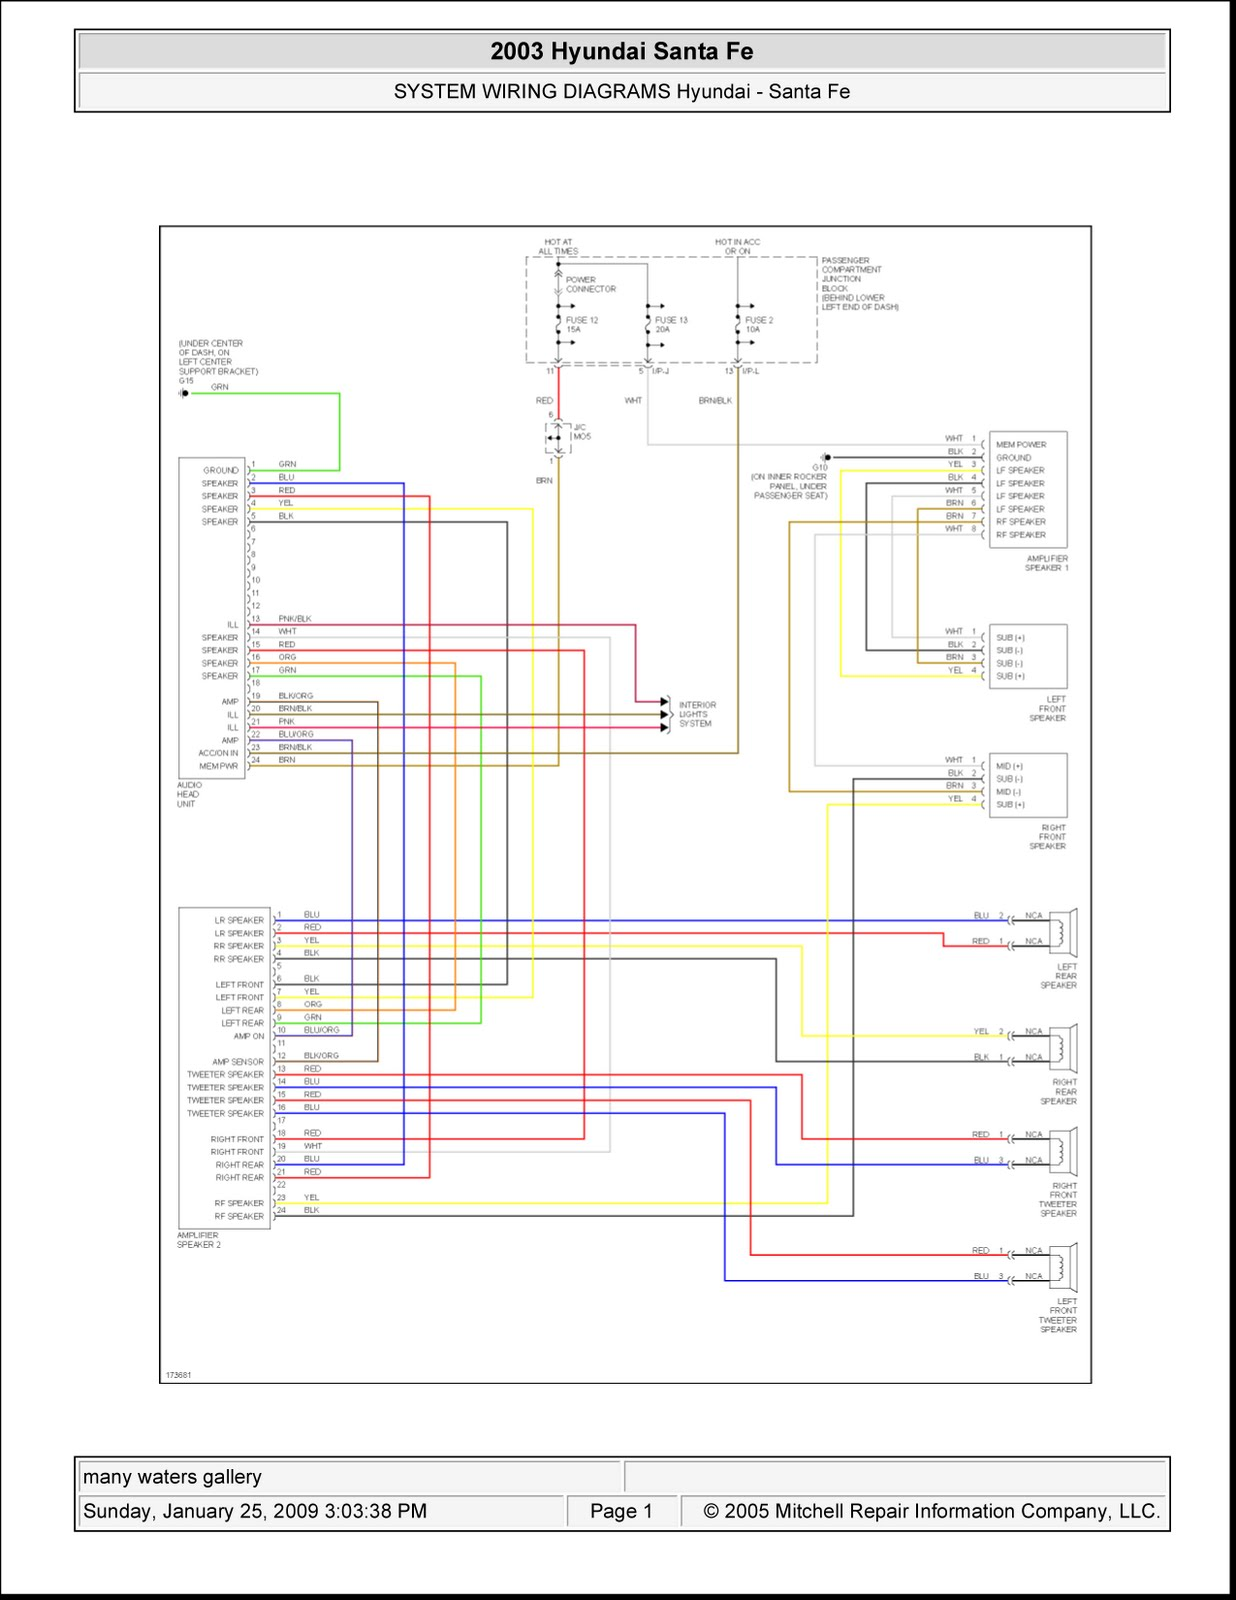 2008 Hyundai Santa Fe Wiring Diagram 1998 Toyota 4runner Fuel Pump Monsoon Get Free Image